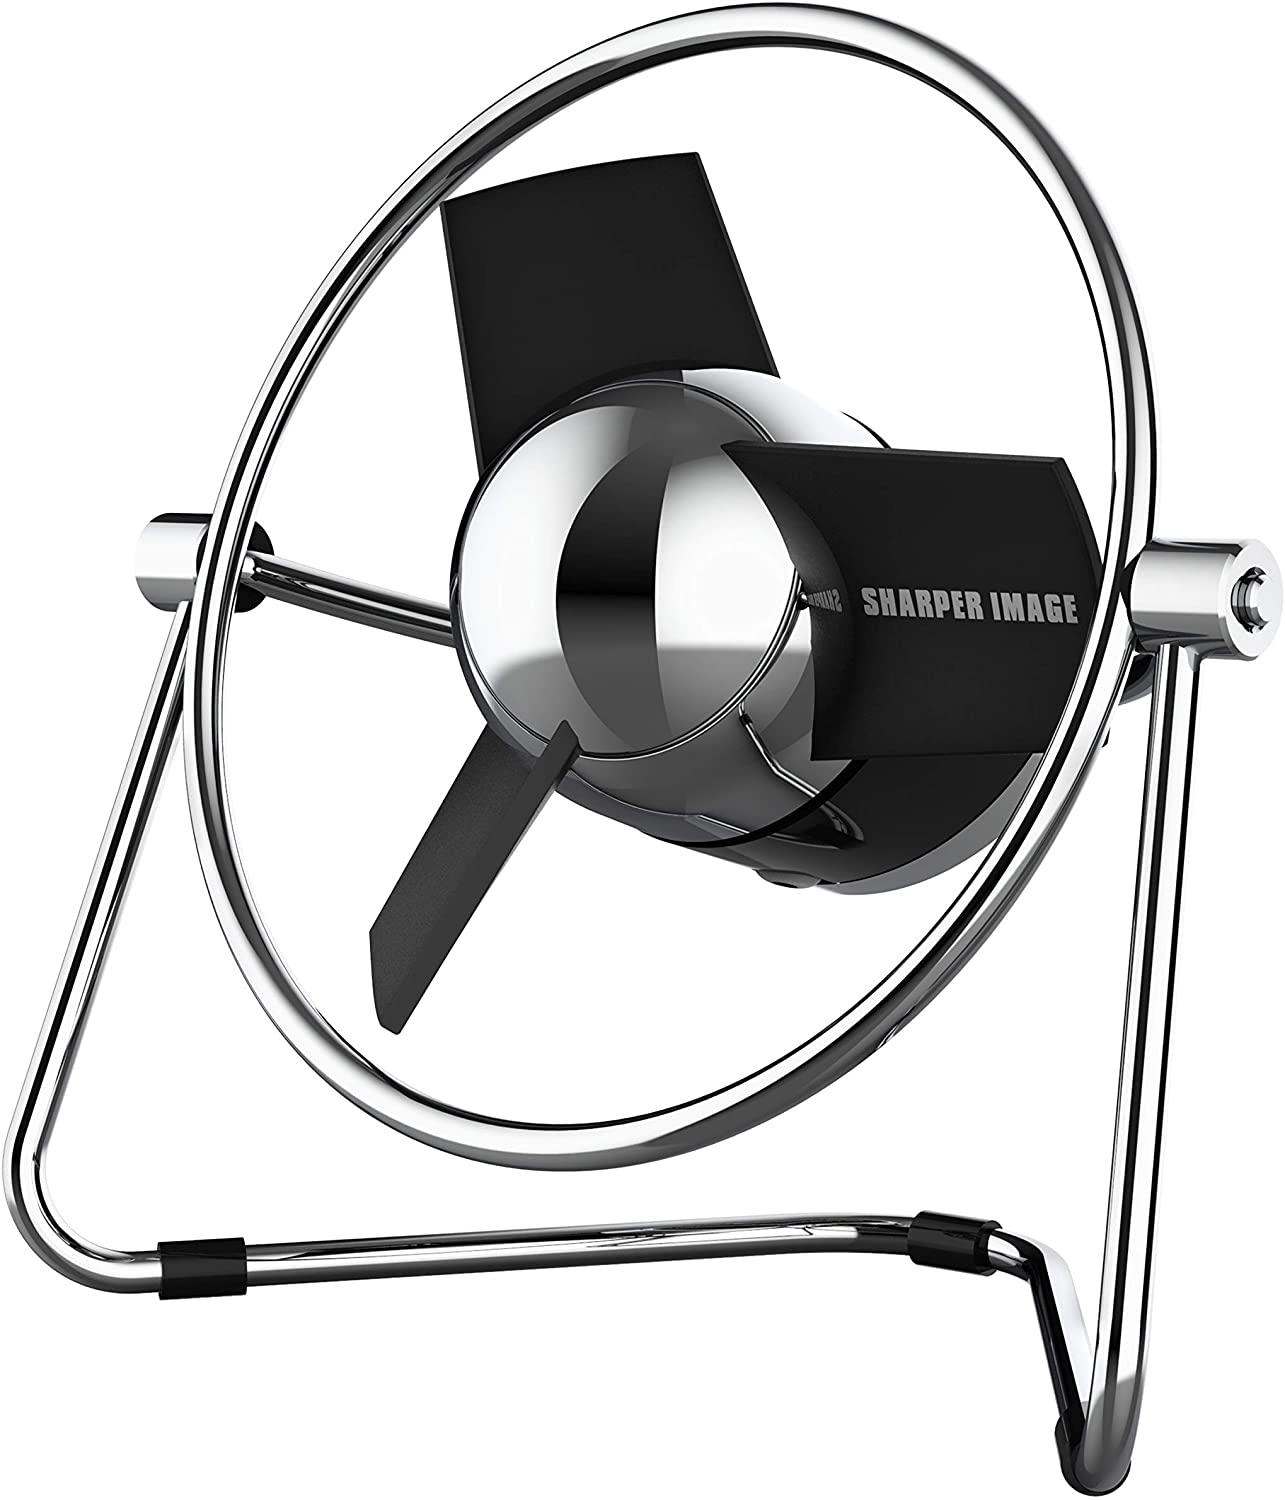 Sharper Image SBM1-SI USB Fan with Soft Blades, 2 Speeds, Touch Control, Quiet Operation, Metal Frame, 5V Wall Adapter, 6 ft. Cable, Personal, Black/Chrome